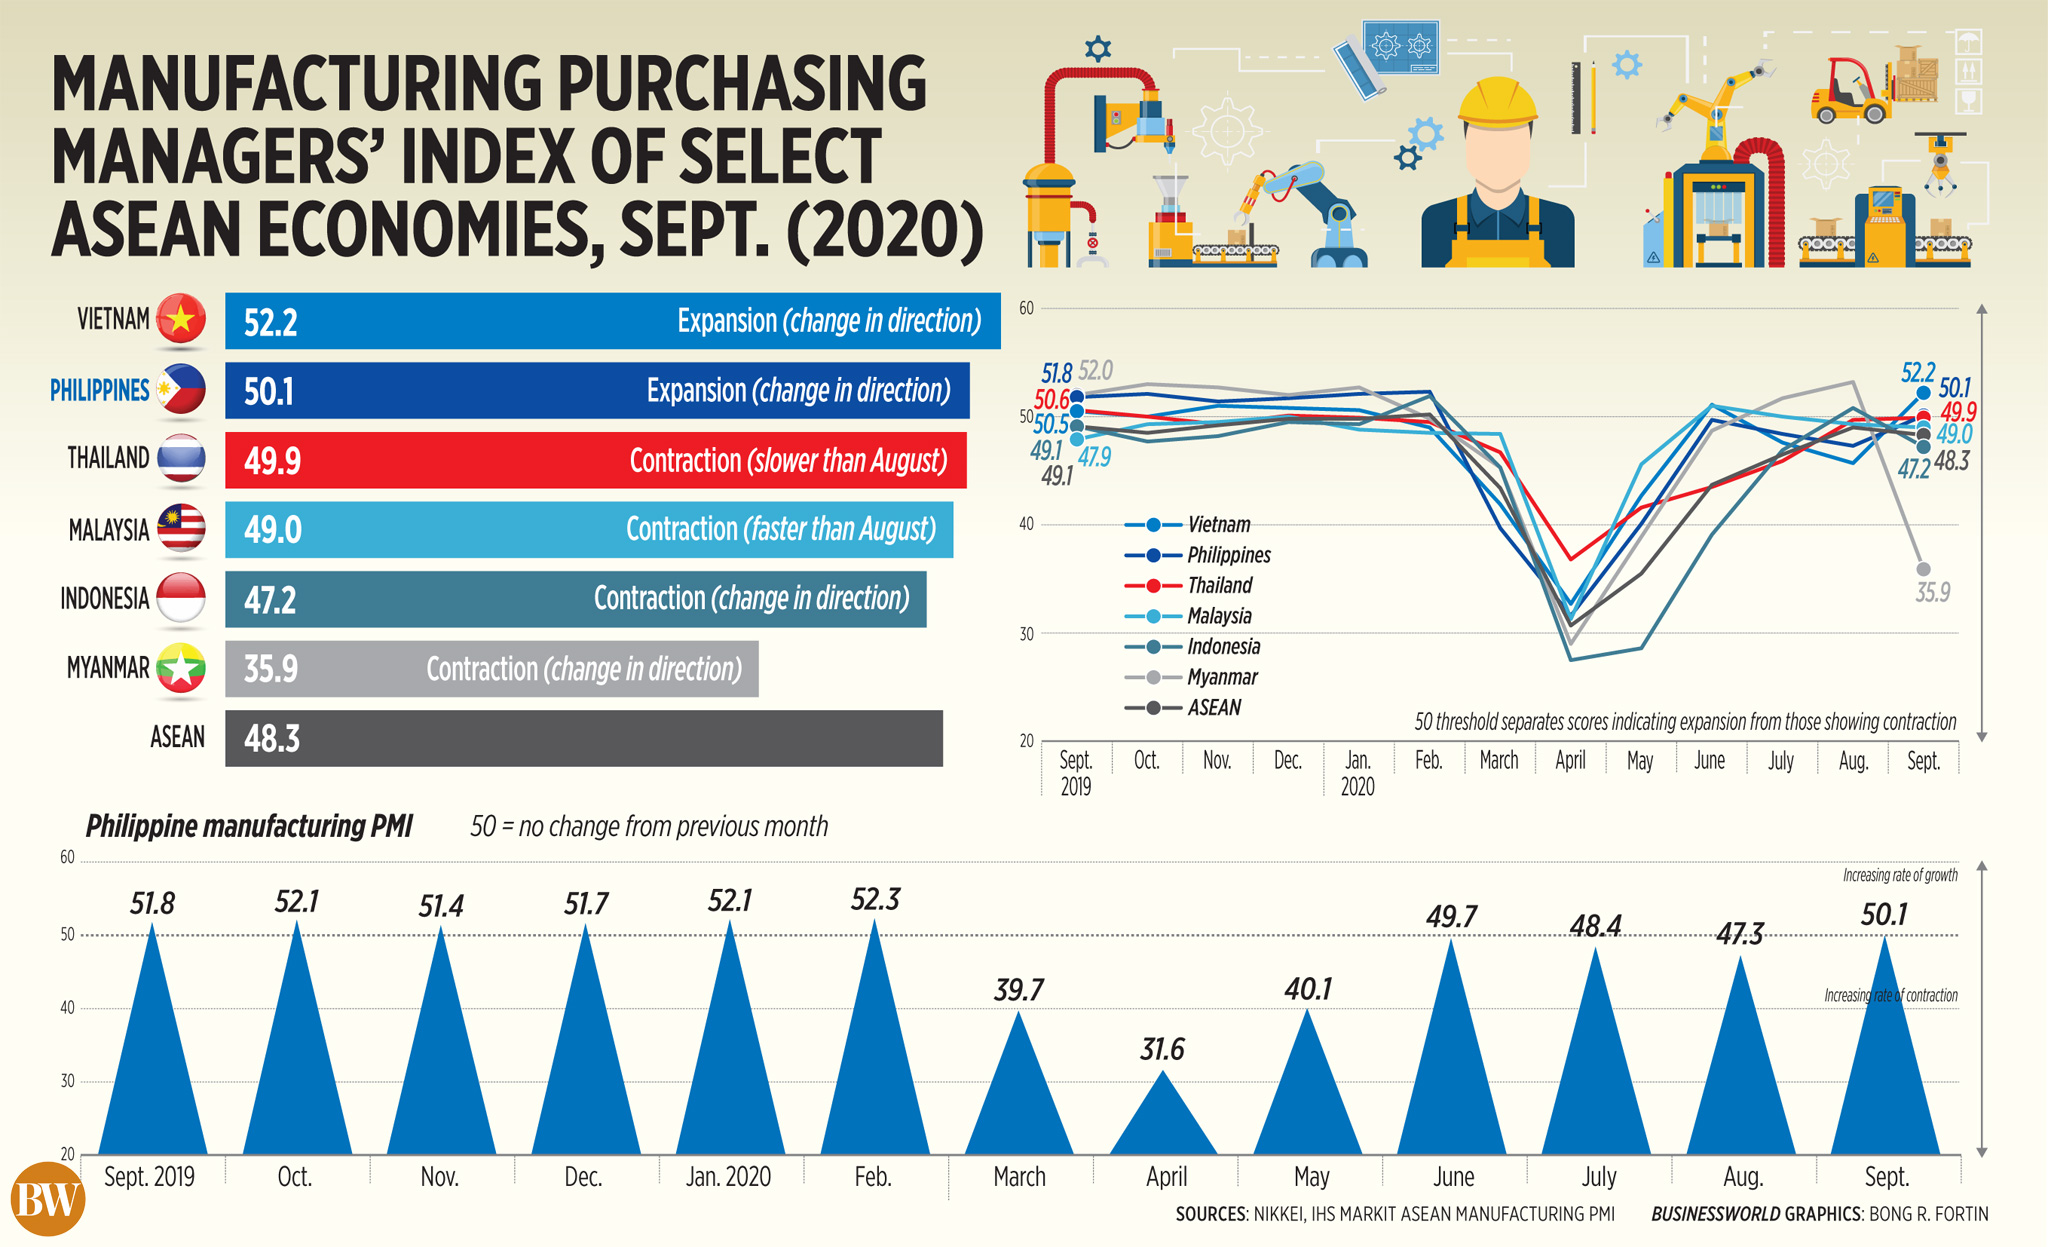 Manufacturing purchasing managers' index of select ASEAN economies, Sept. (2020)